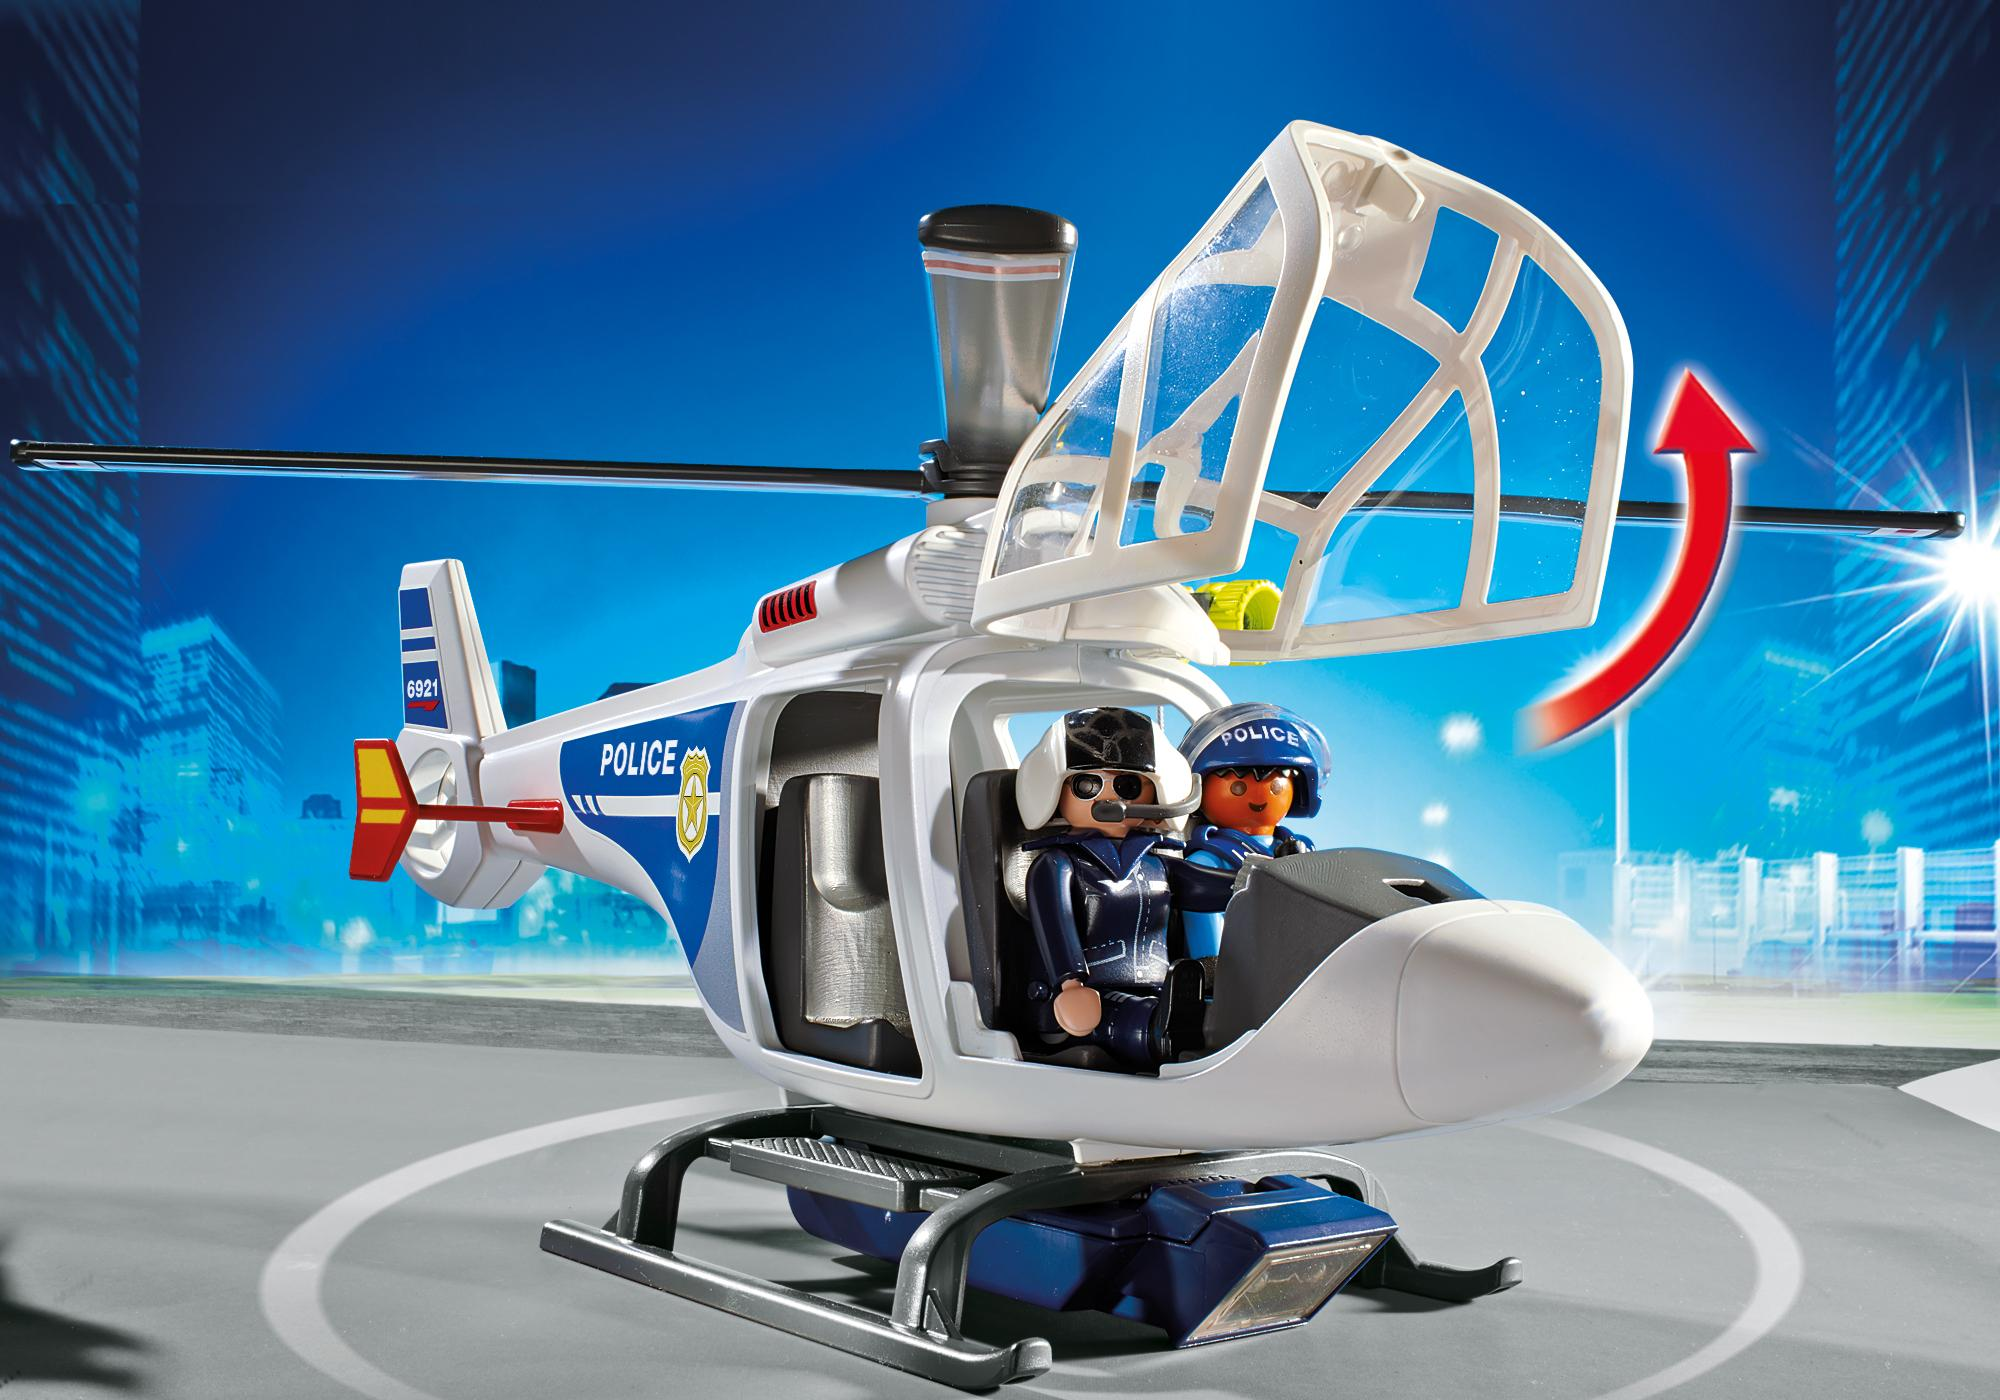 http://media.playmobil.com/i/playmobil/6921_product_extra1/Int. Polizei-Helikopter mit LED-Suchscheinwerfer